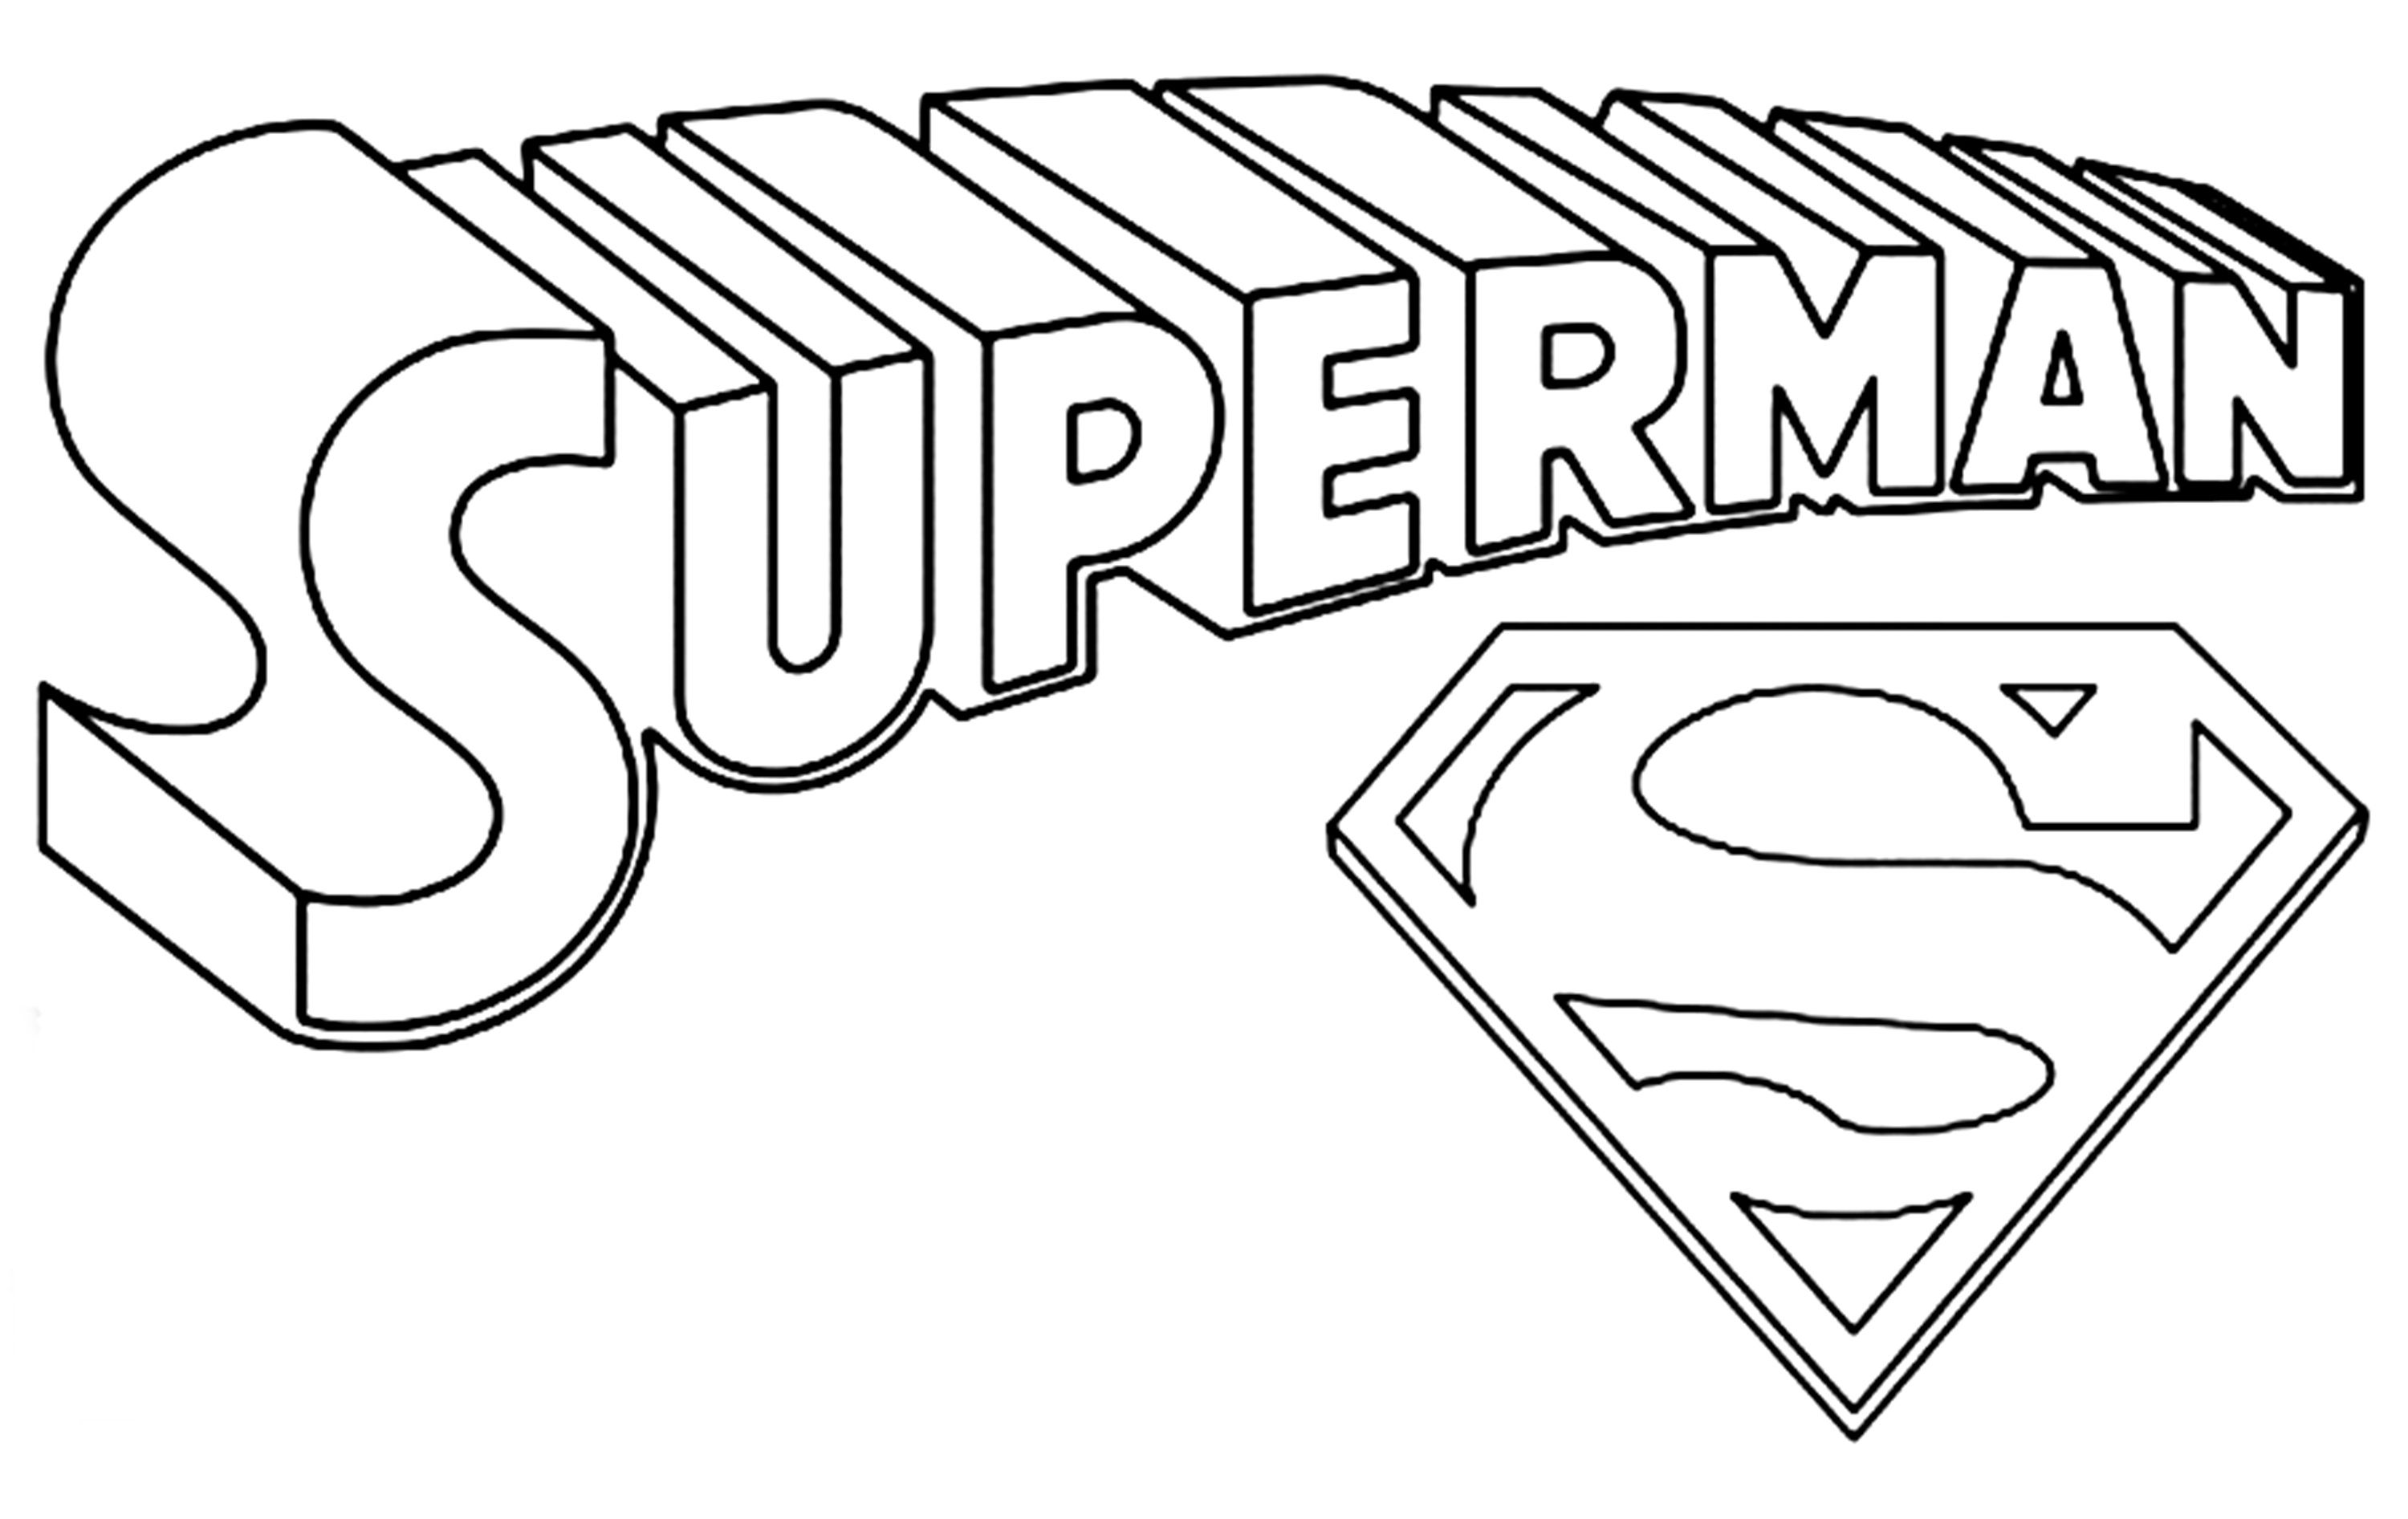 Superman Logo Coloring Pages Colorine Net 25555 Printable